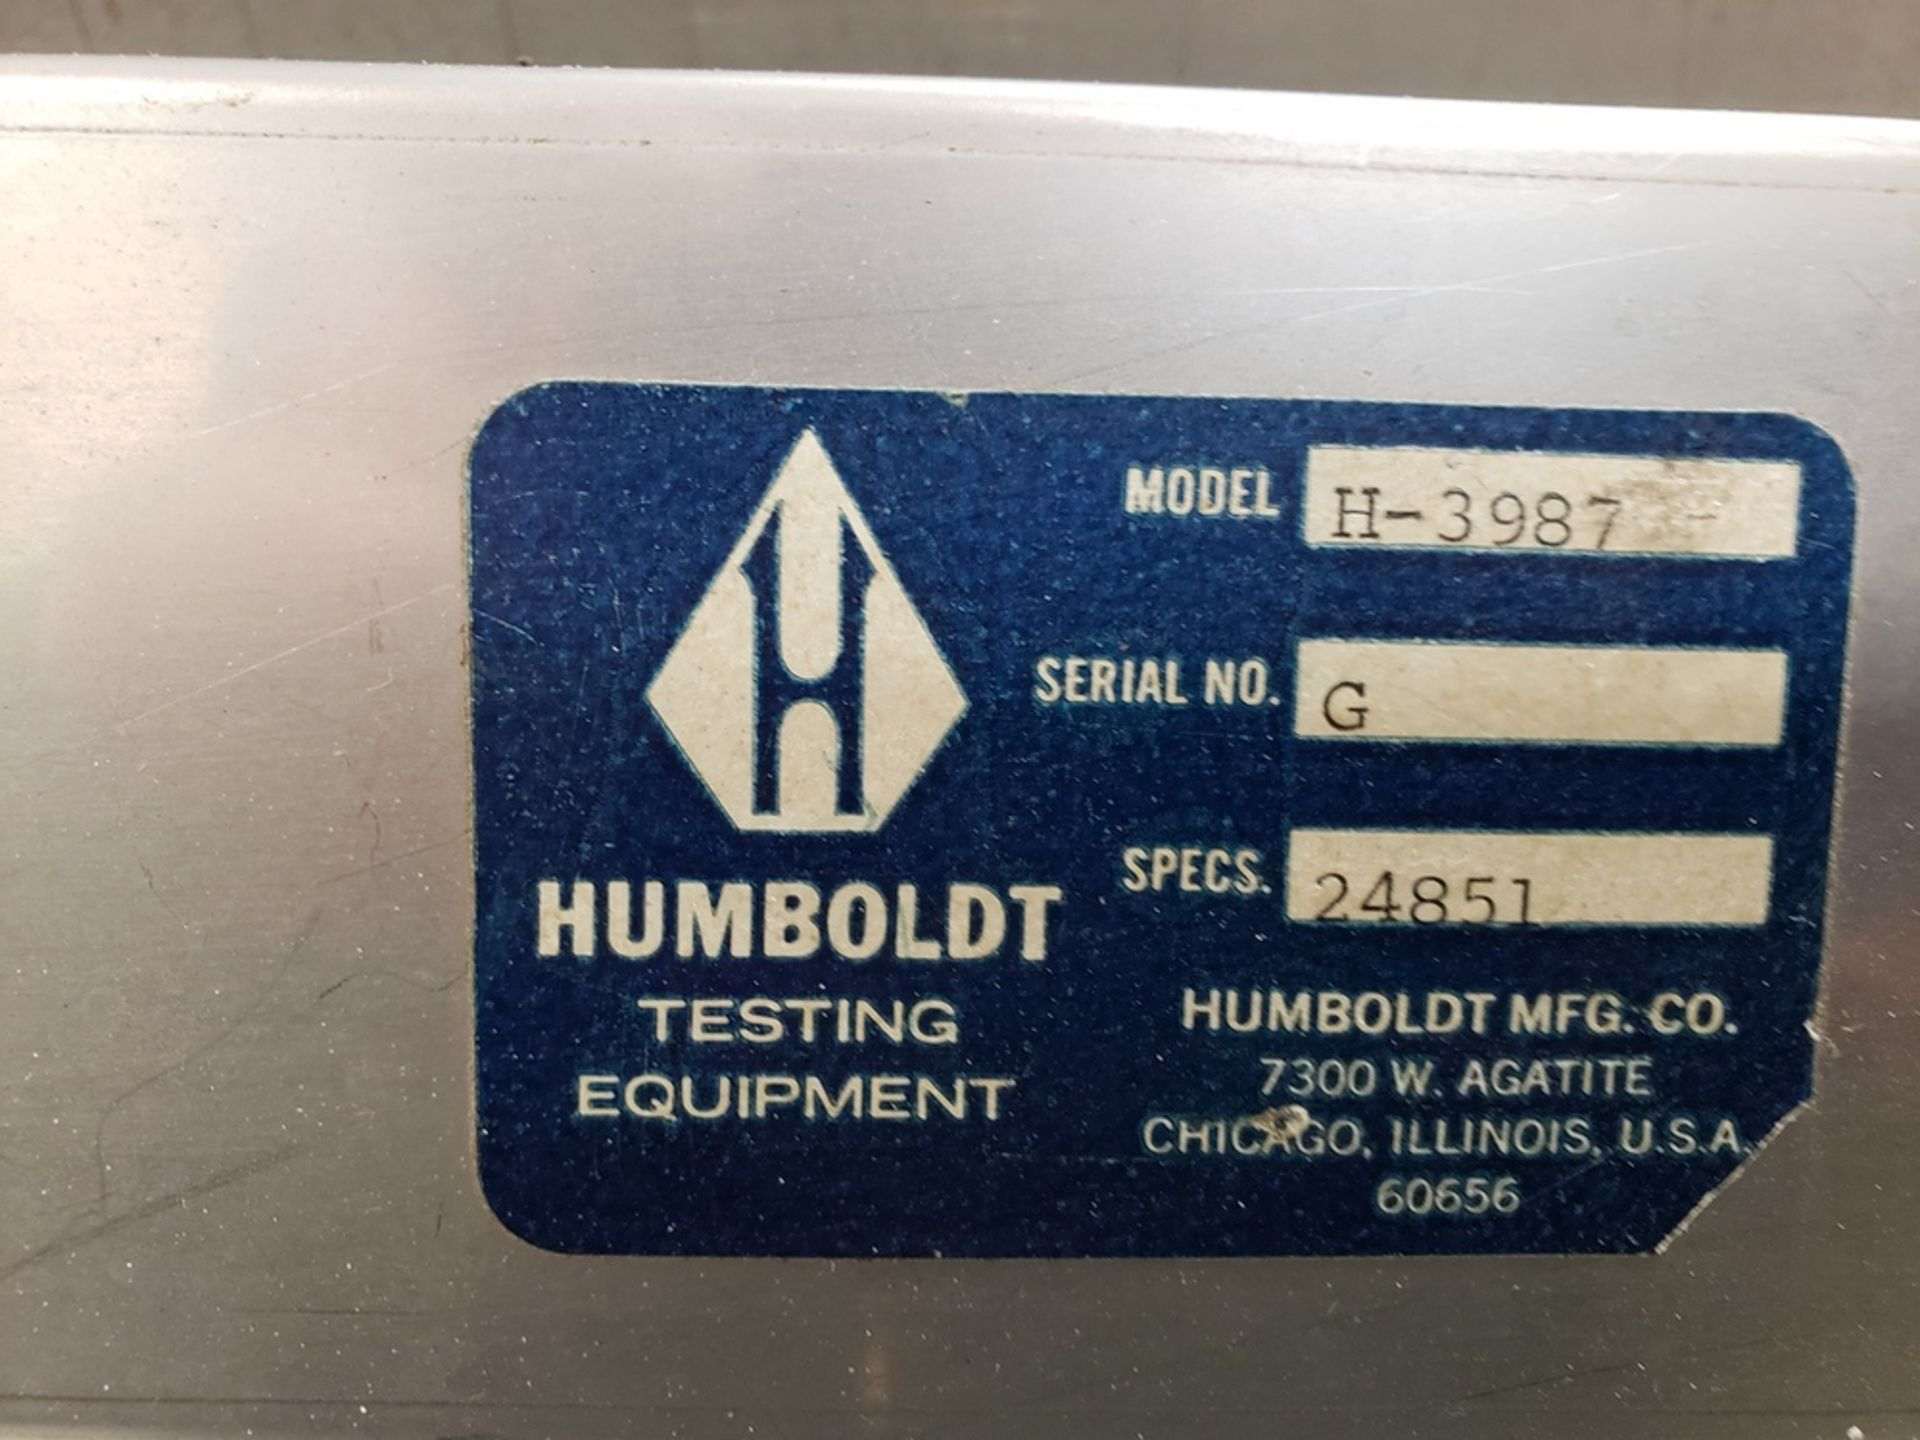 Lot 1063 - Humboldt Sample Splitter, M# H-3987 | Rig Fee: Hand Carry or Contact Rigger